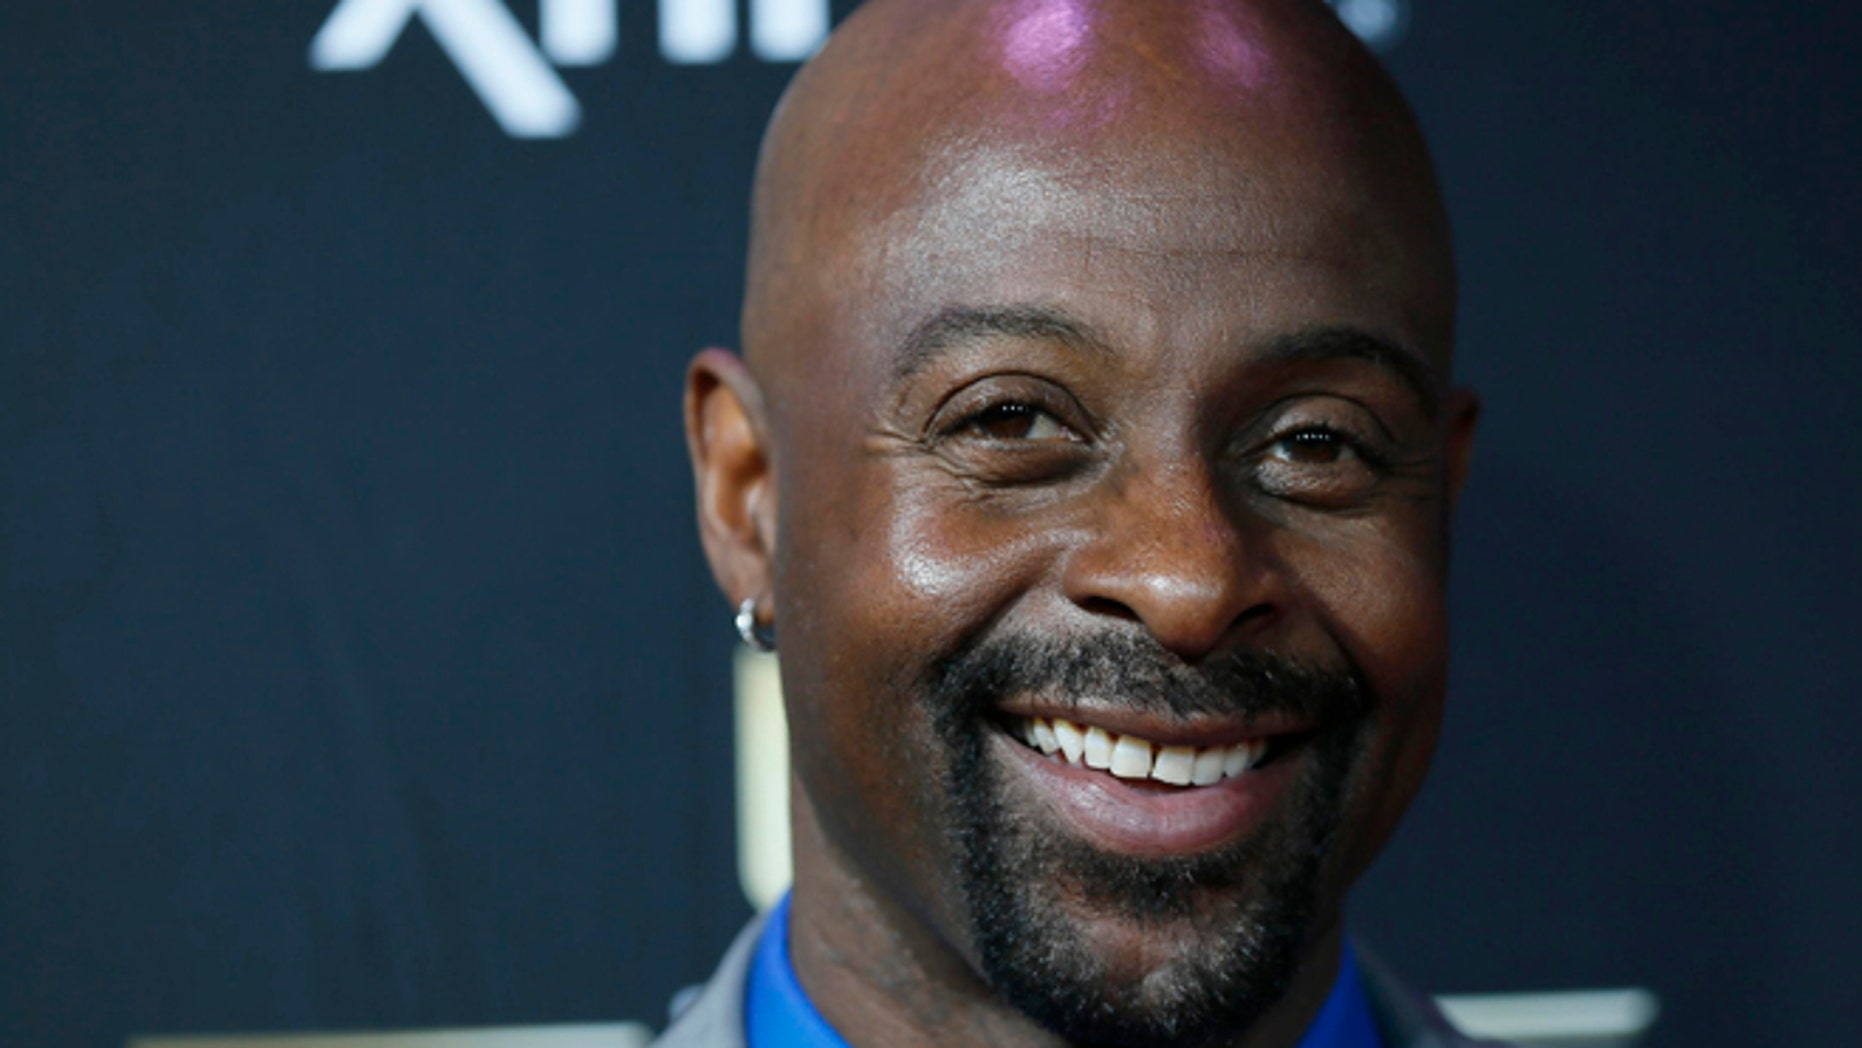 Feb. 2, 2013: Former NFL player Jerry Rice arrives at the 2nd Annual NFL Honors in New Orleans, La.